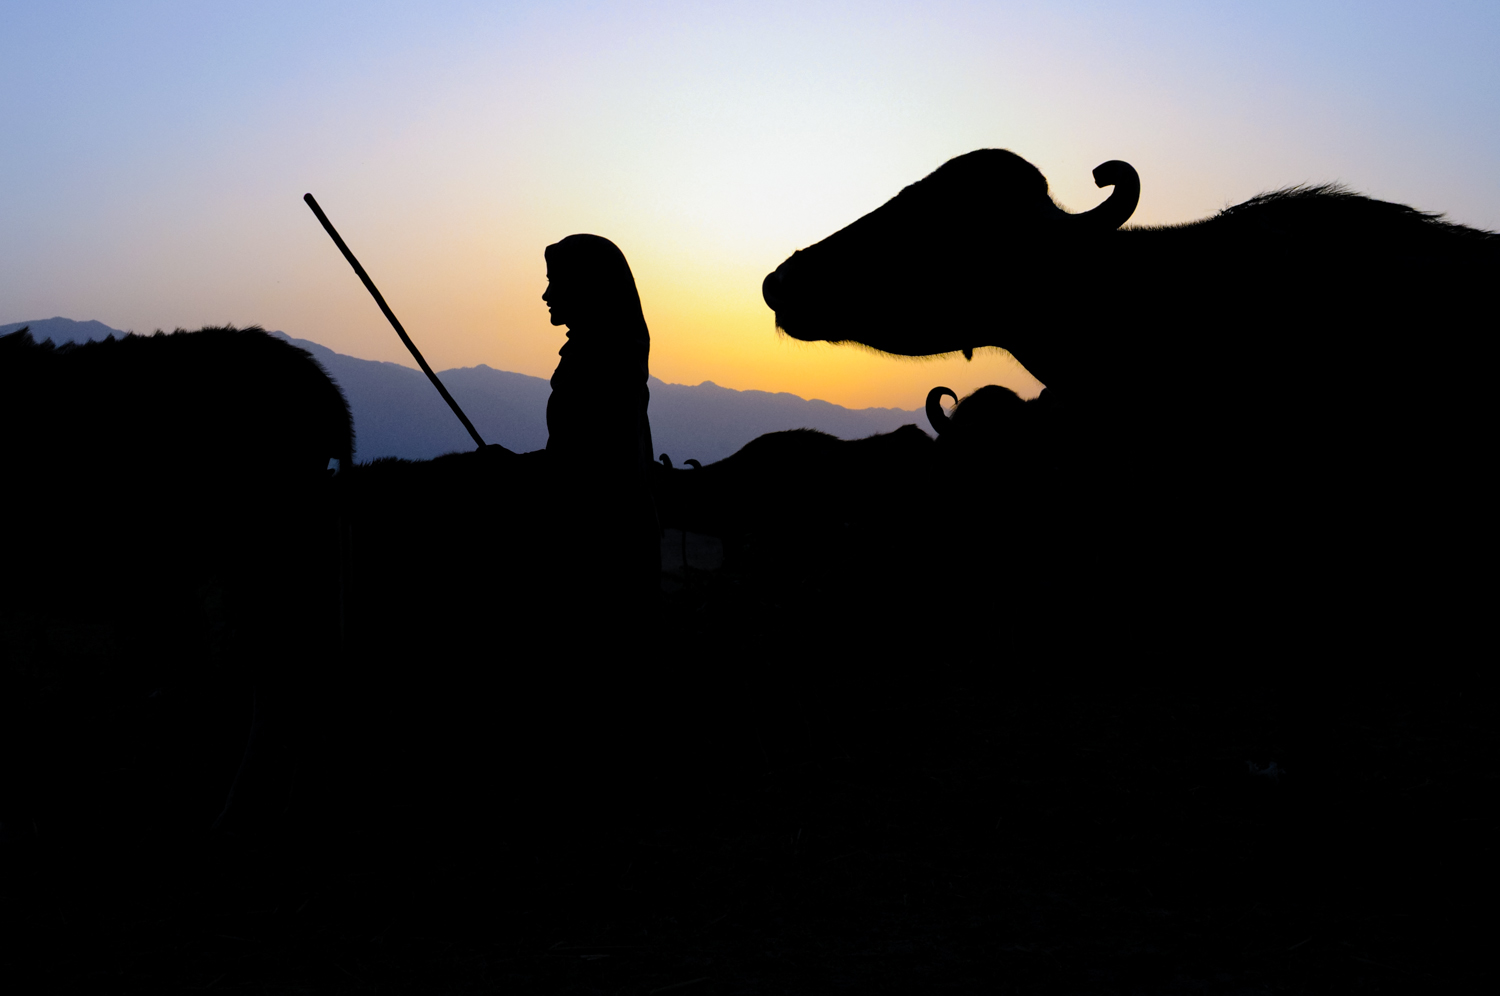 12-year-old Bashi watches her family's herd along the Asan River, as the sun begins to rise.